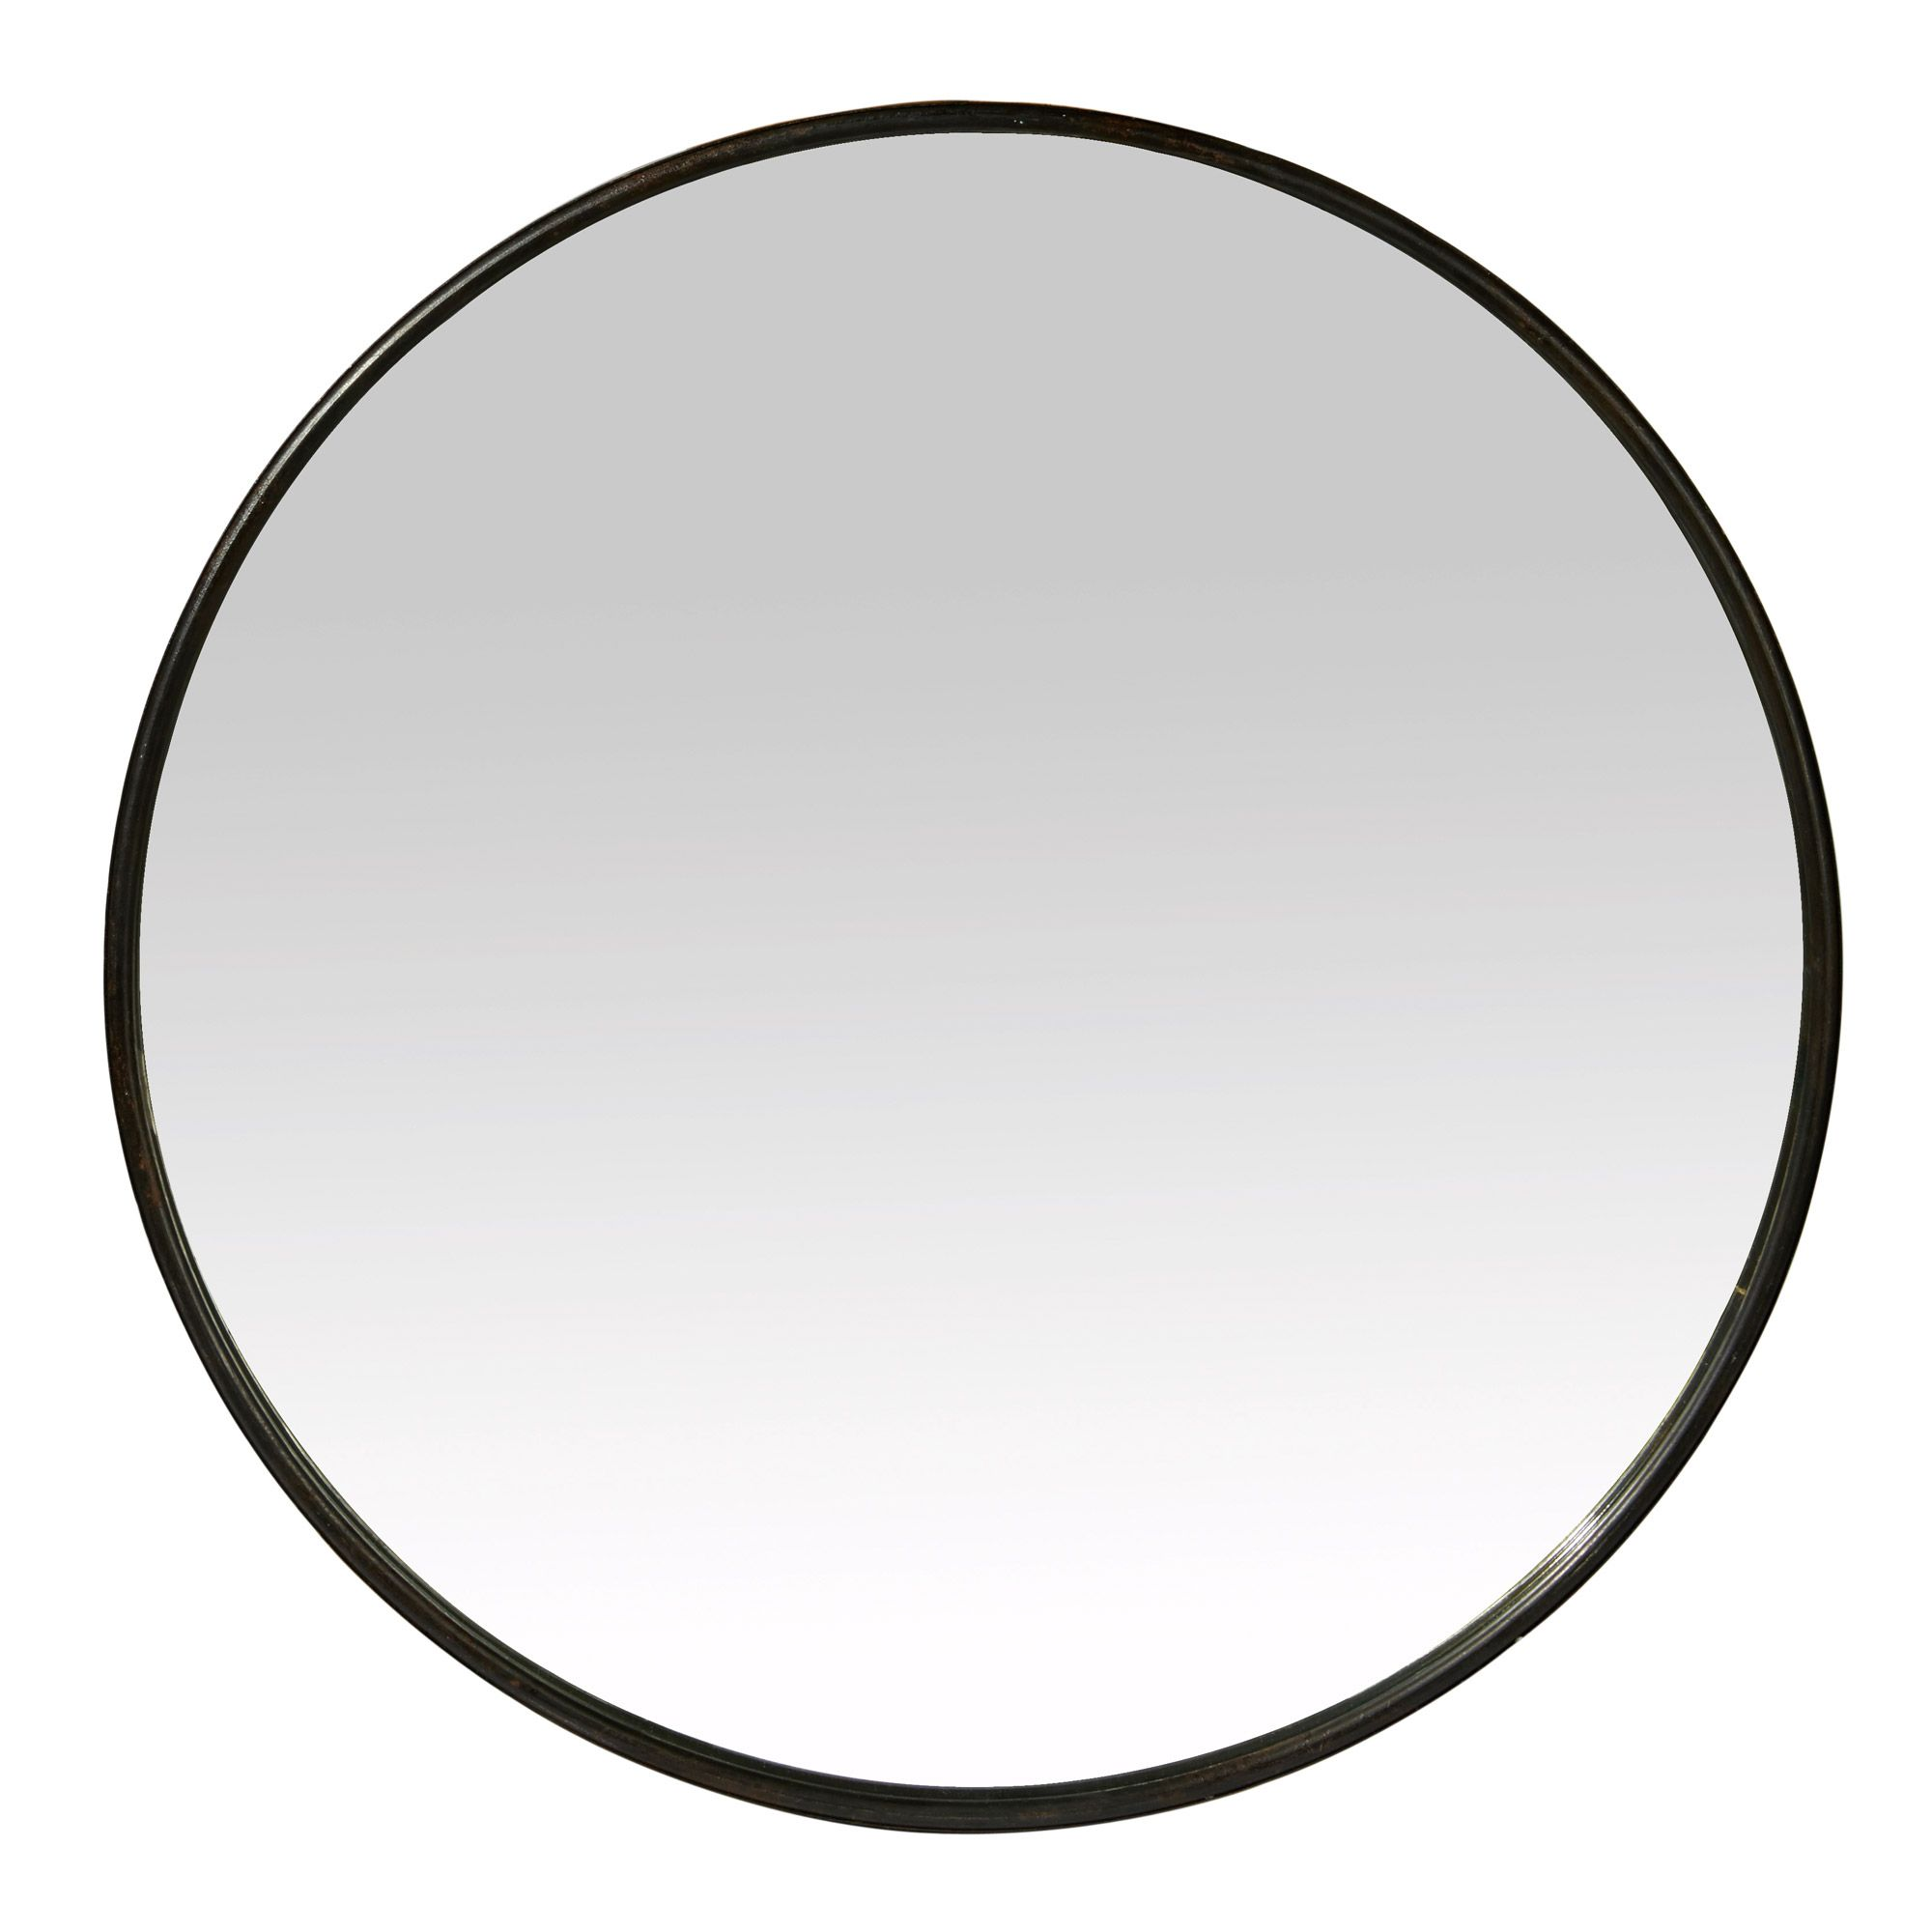 miroir rond mural en fer noir boudoir miroir rond boudoir et miroirs. Black Bedroom Furniture Sets. Home Design Ideas